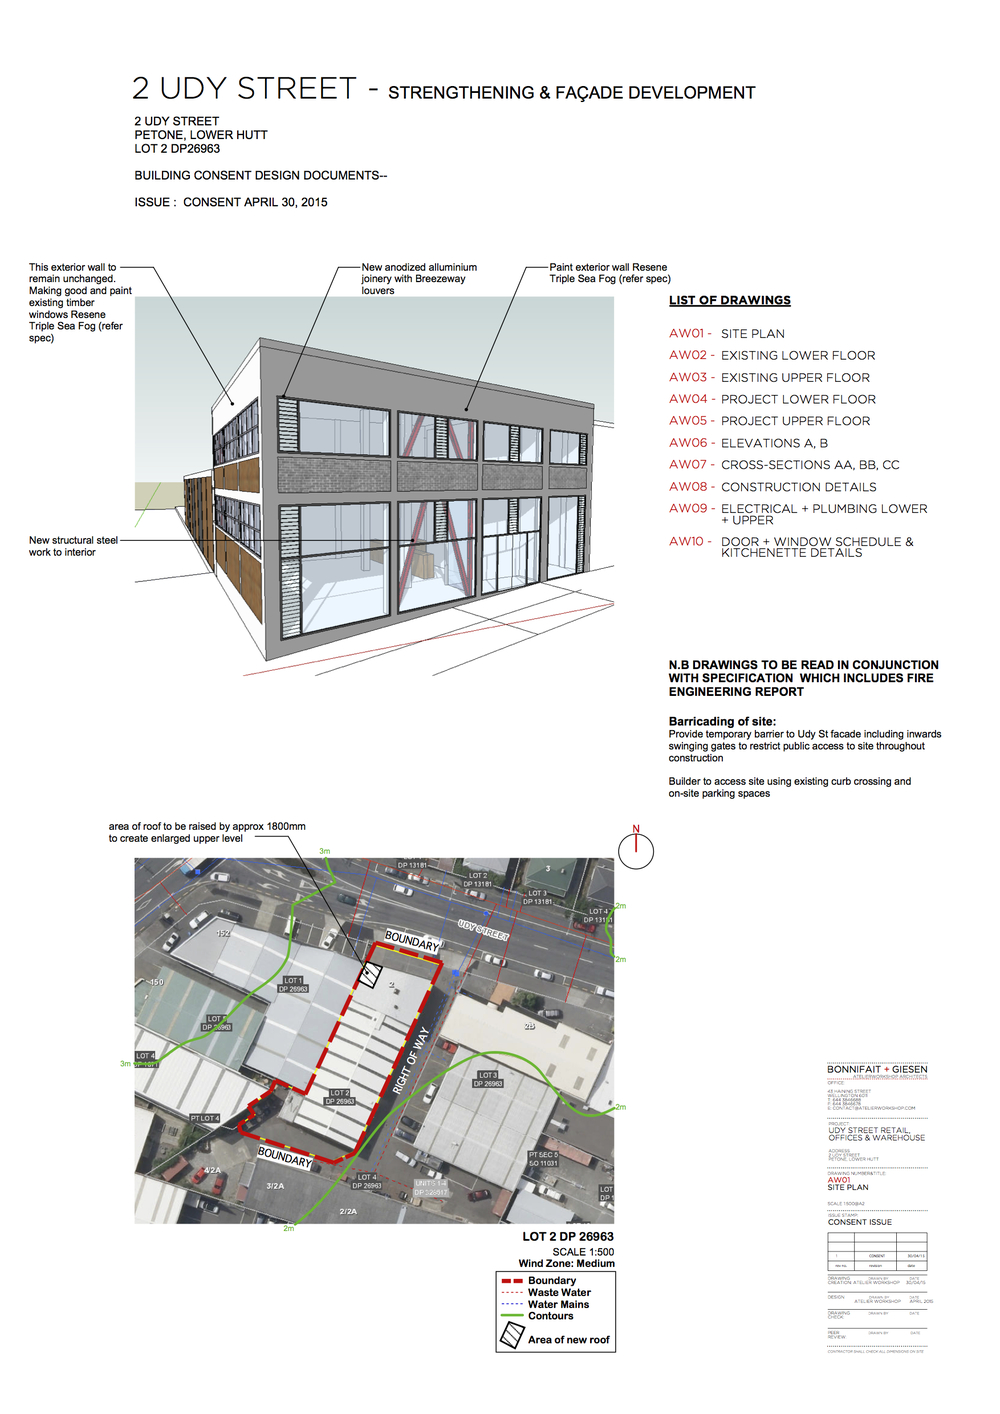 PETONE May 29 Consent Issue 1.jpg